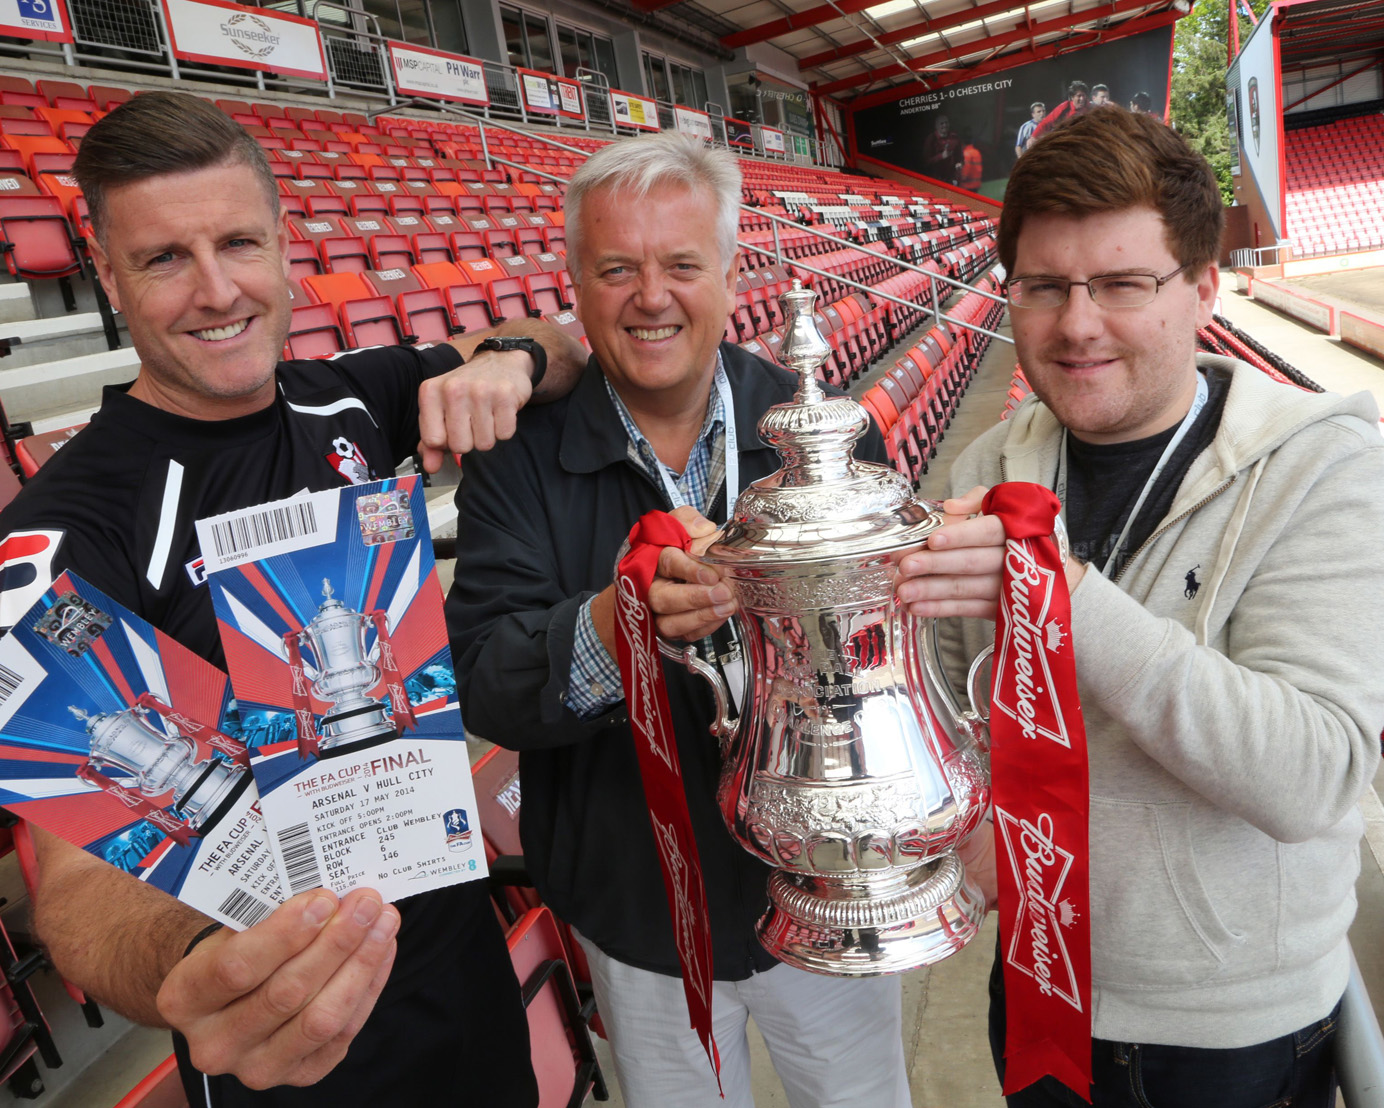 CUP KINGS: AFC Bournemouth supporters David Whitehead and Adrian Lee with the FA Cup and Steve Fletcher